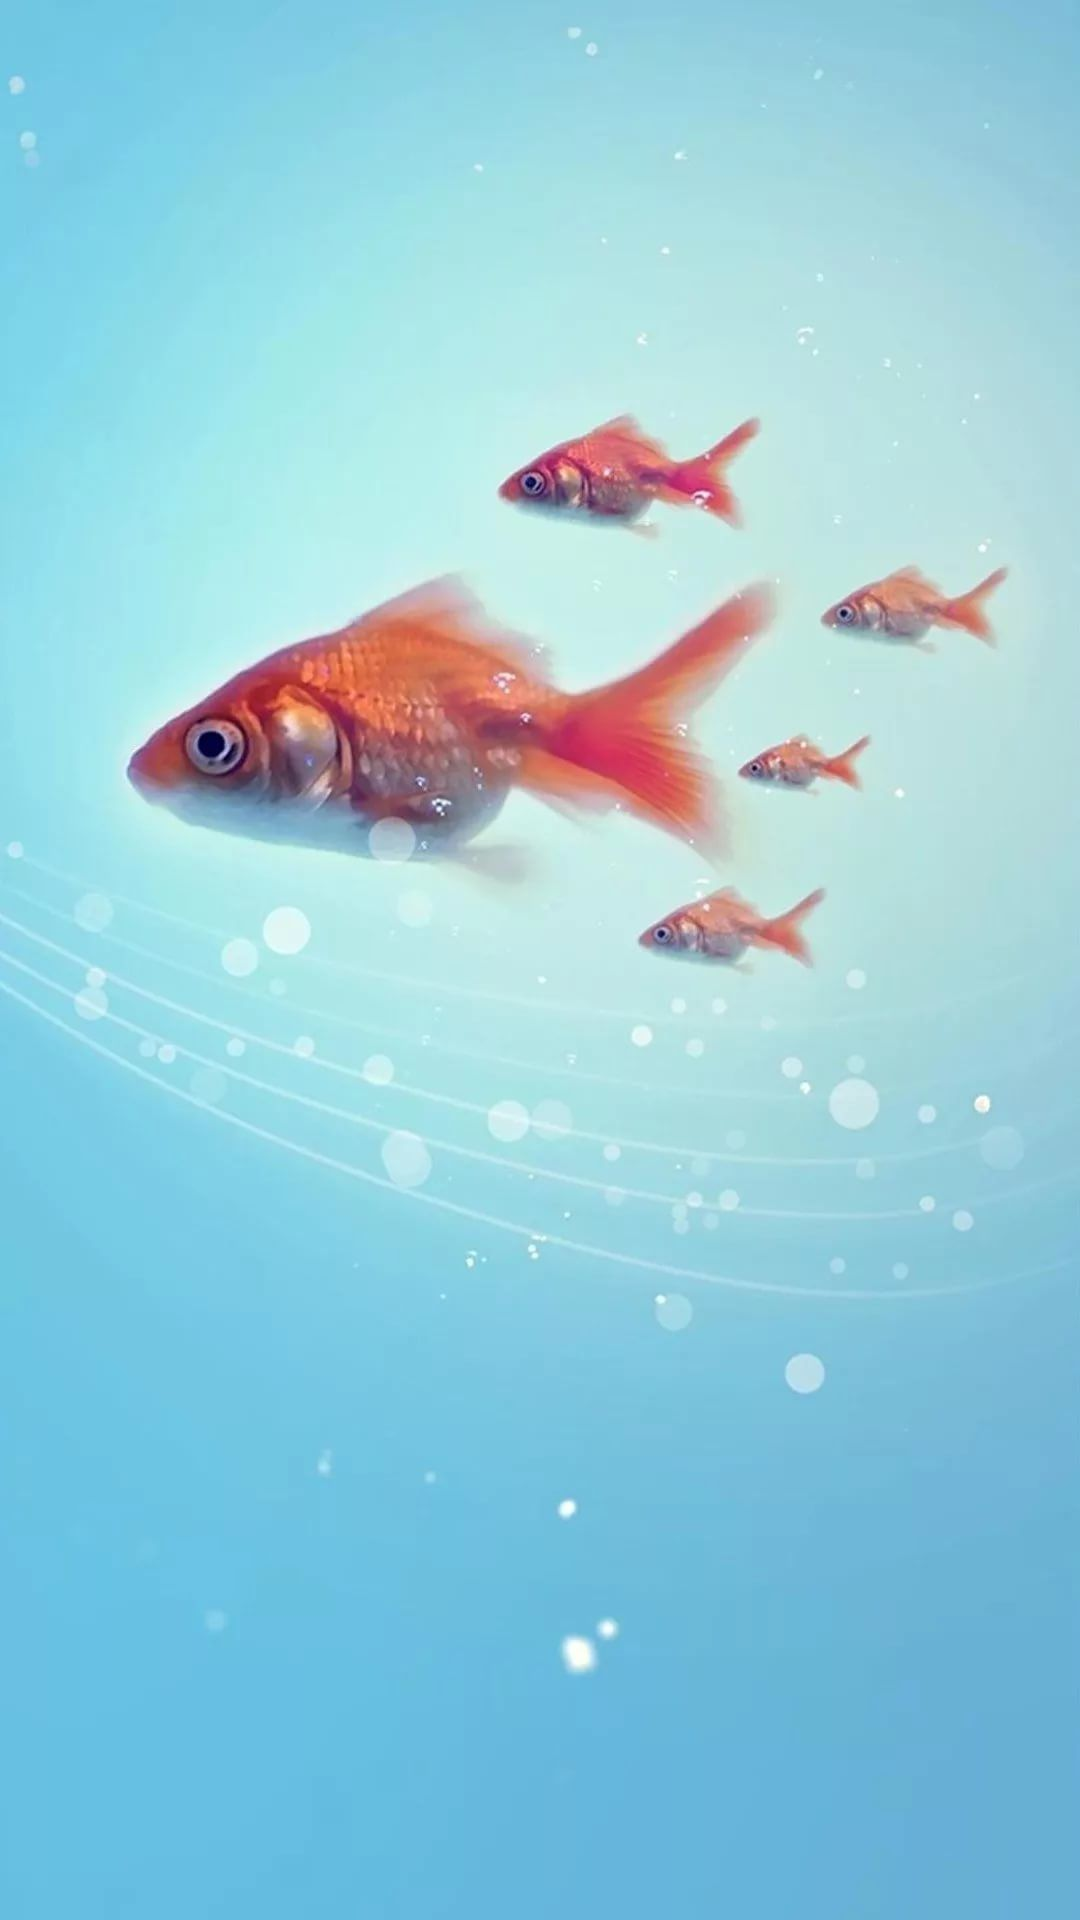 Fish Iphone Wallpapers 20 Images Wallpaperboat